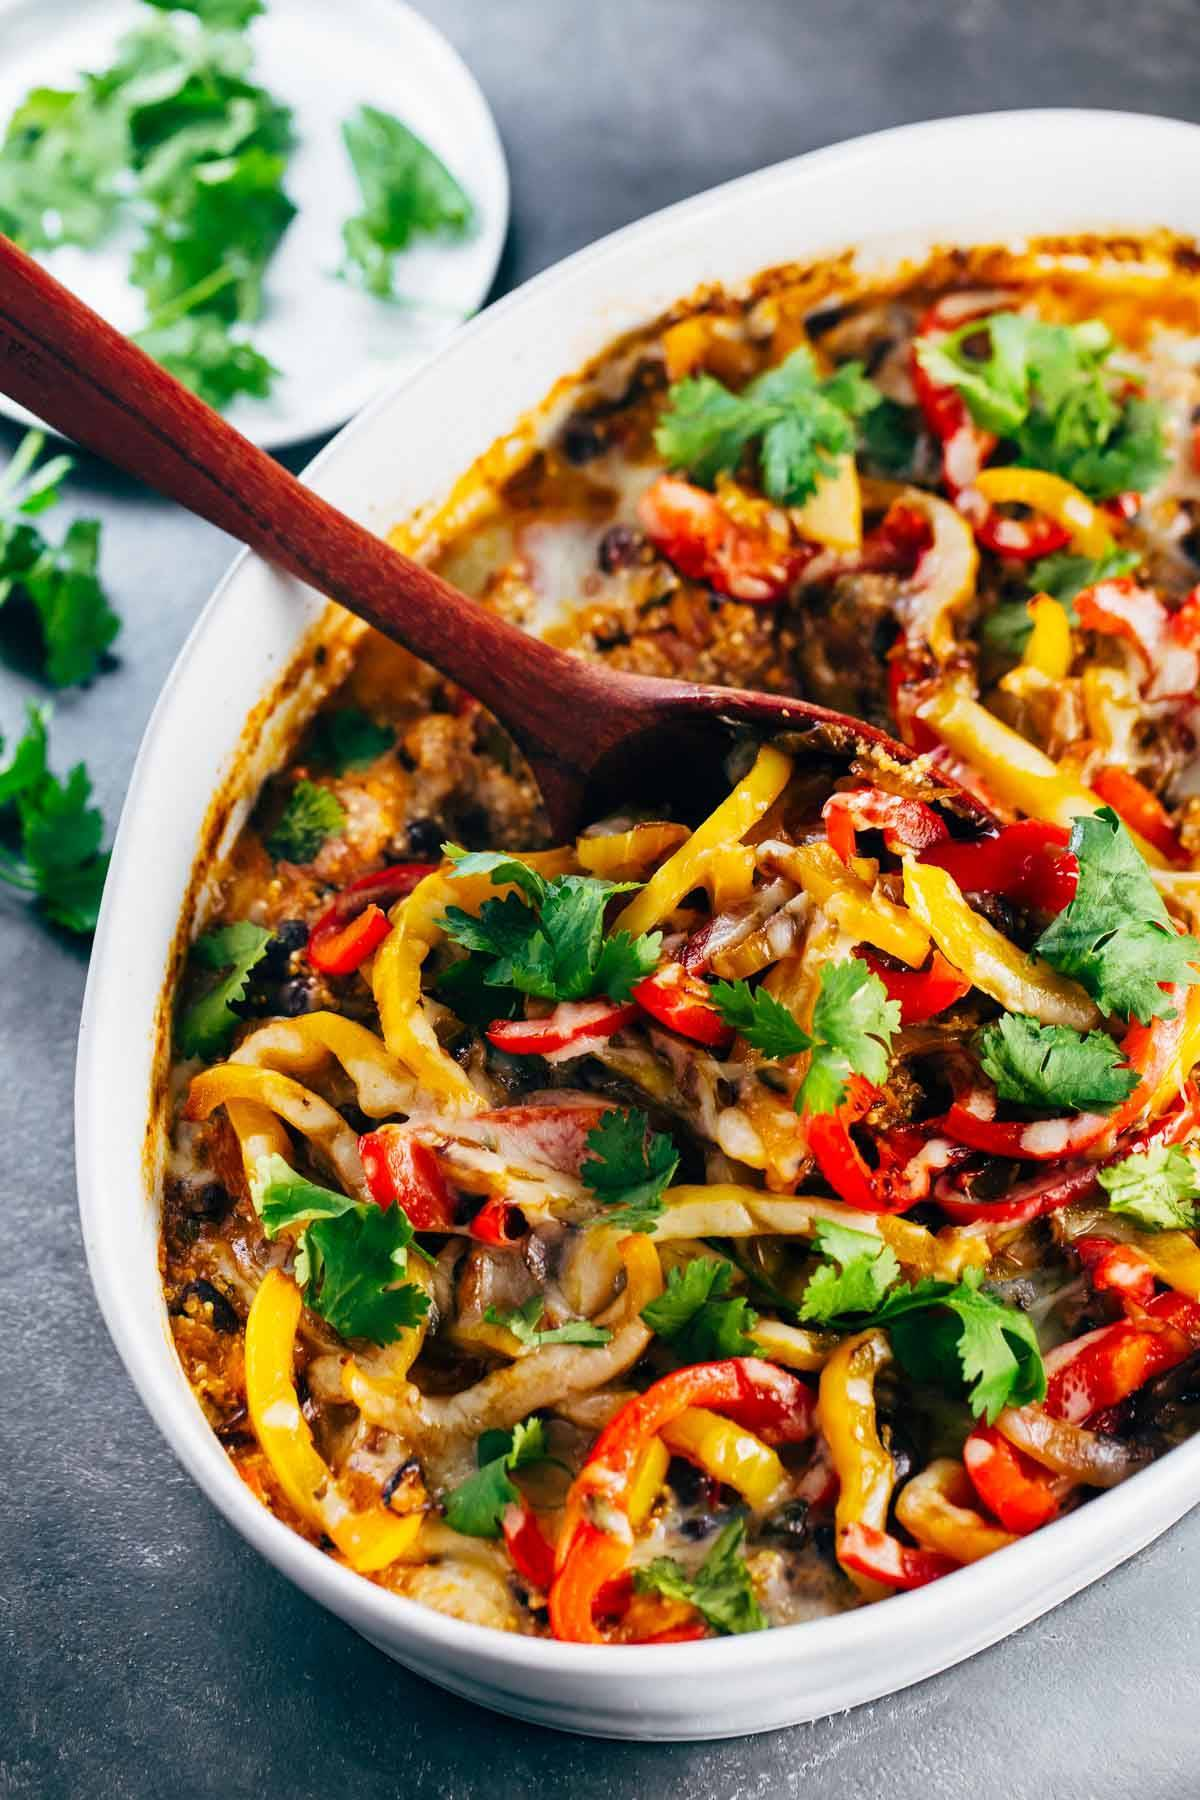 Mexican Chicken Quinoa Casserole in a baking dish with a wooden spoon.